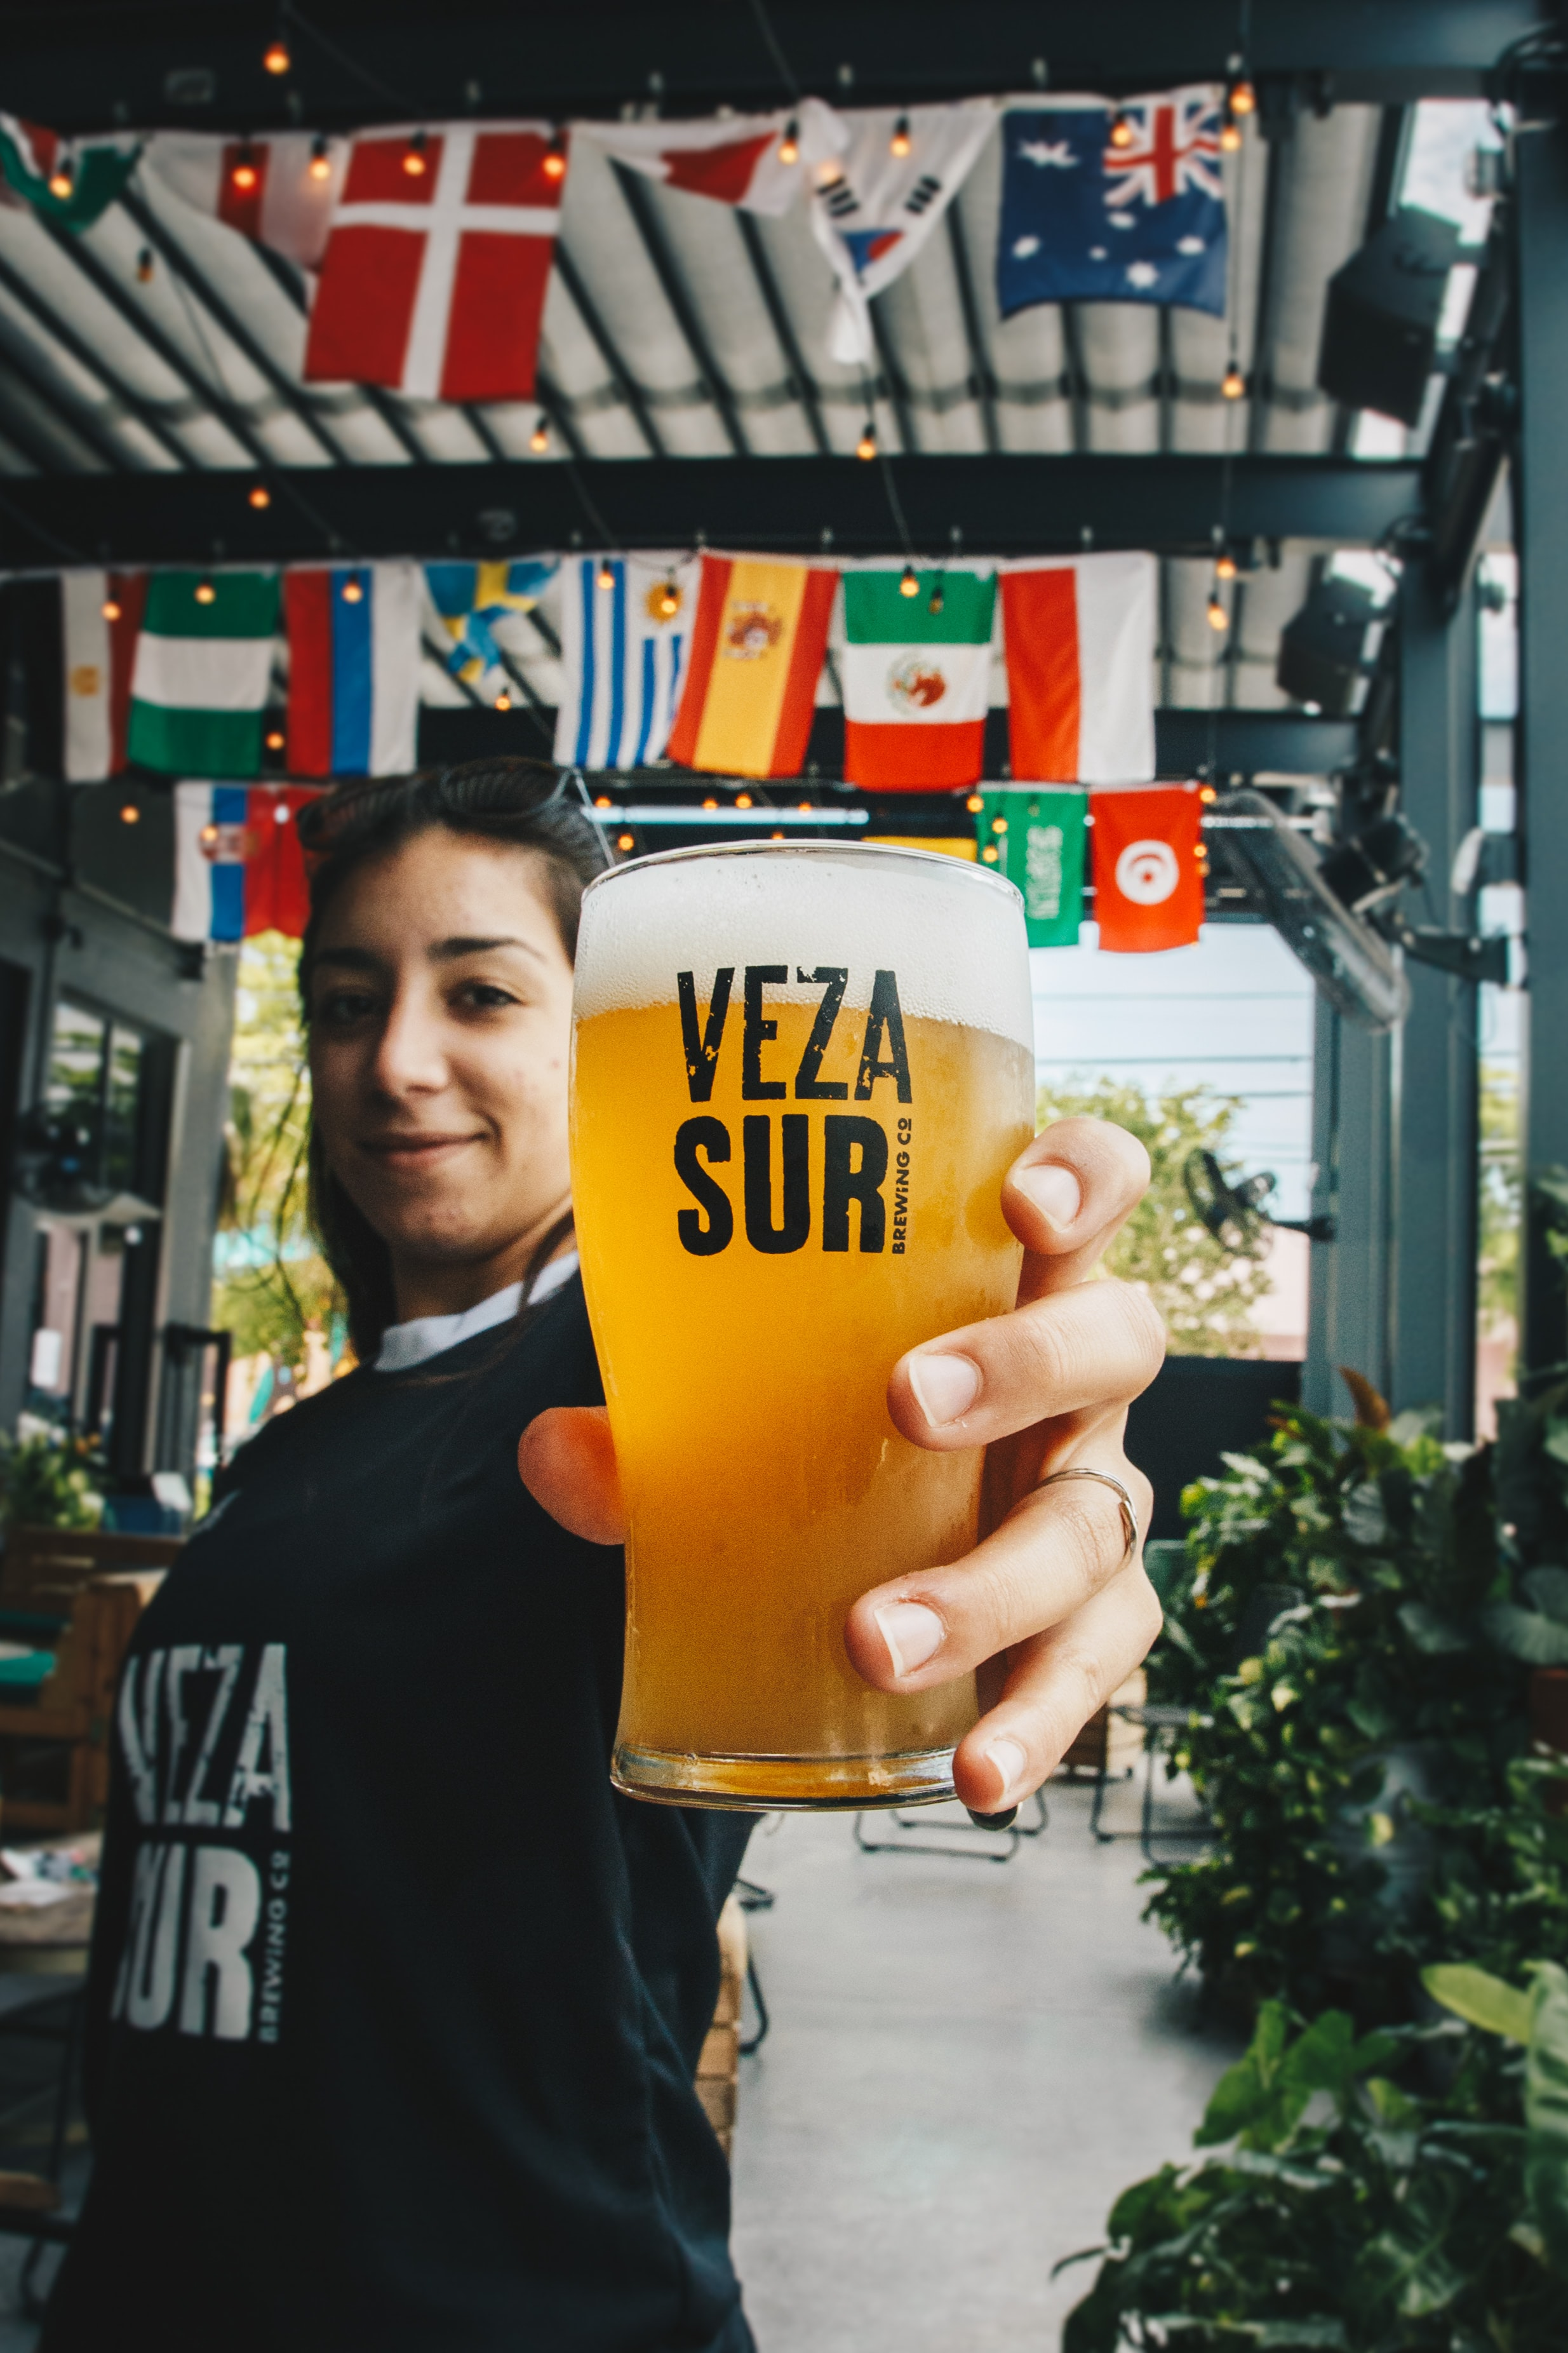 filtered photography of woman holding beer-filled Veza Suri pilsener glass